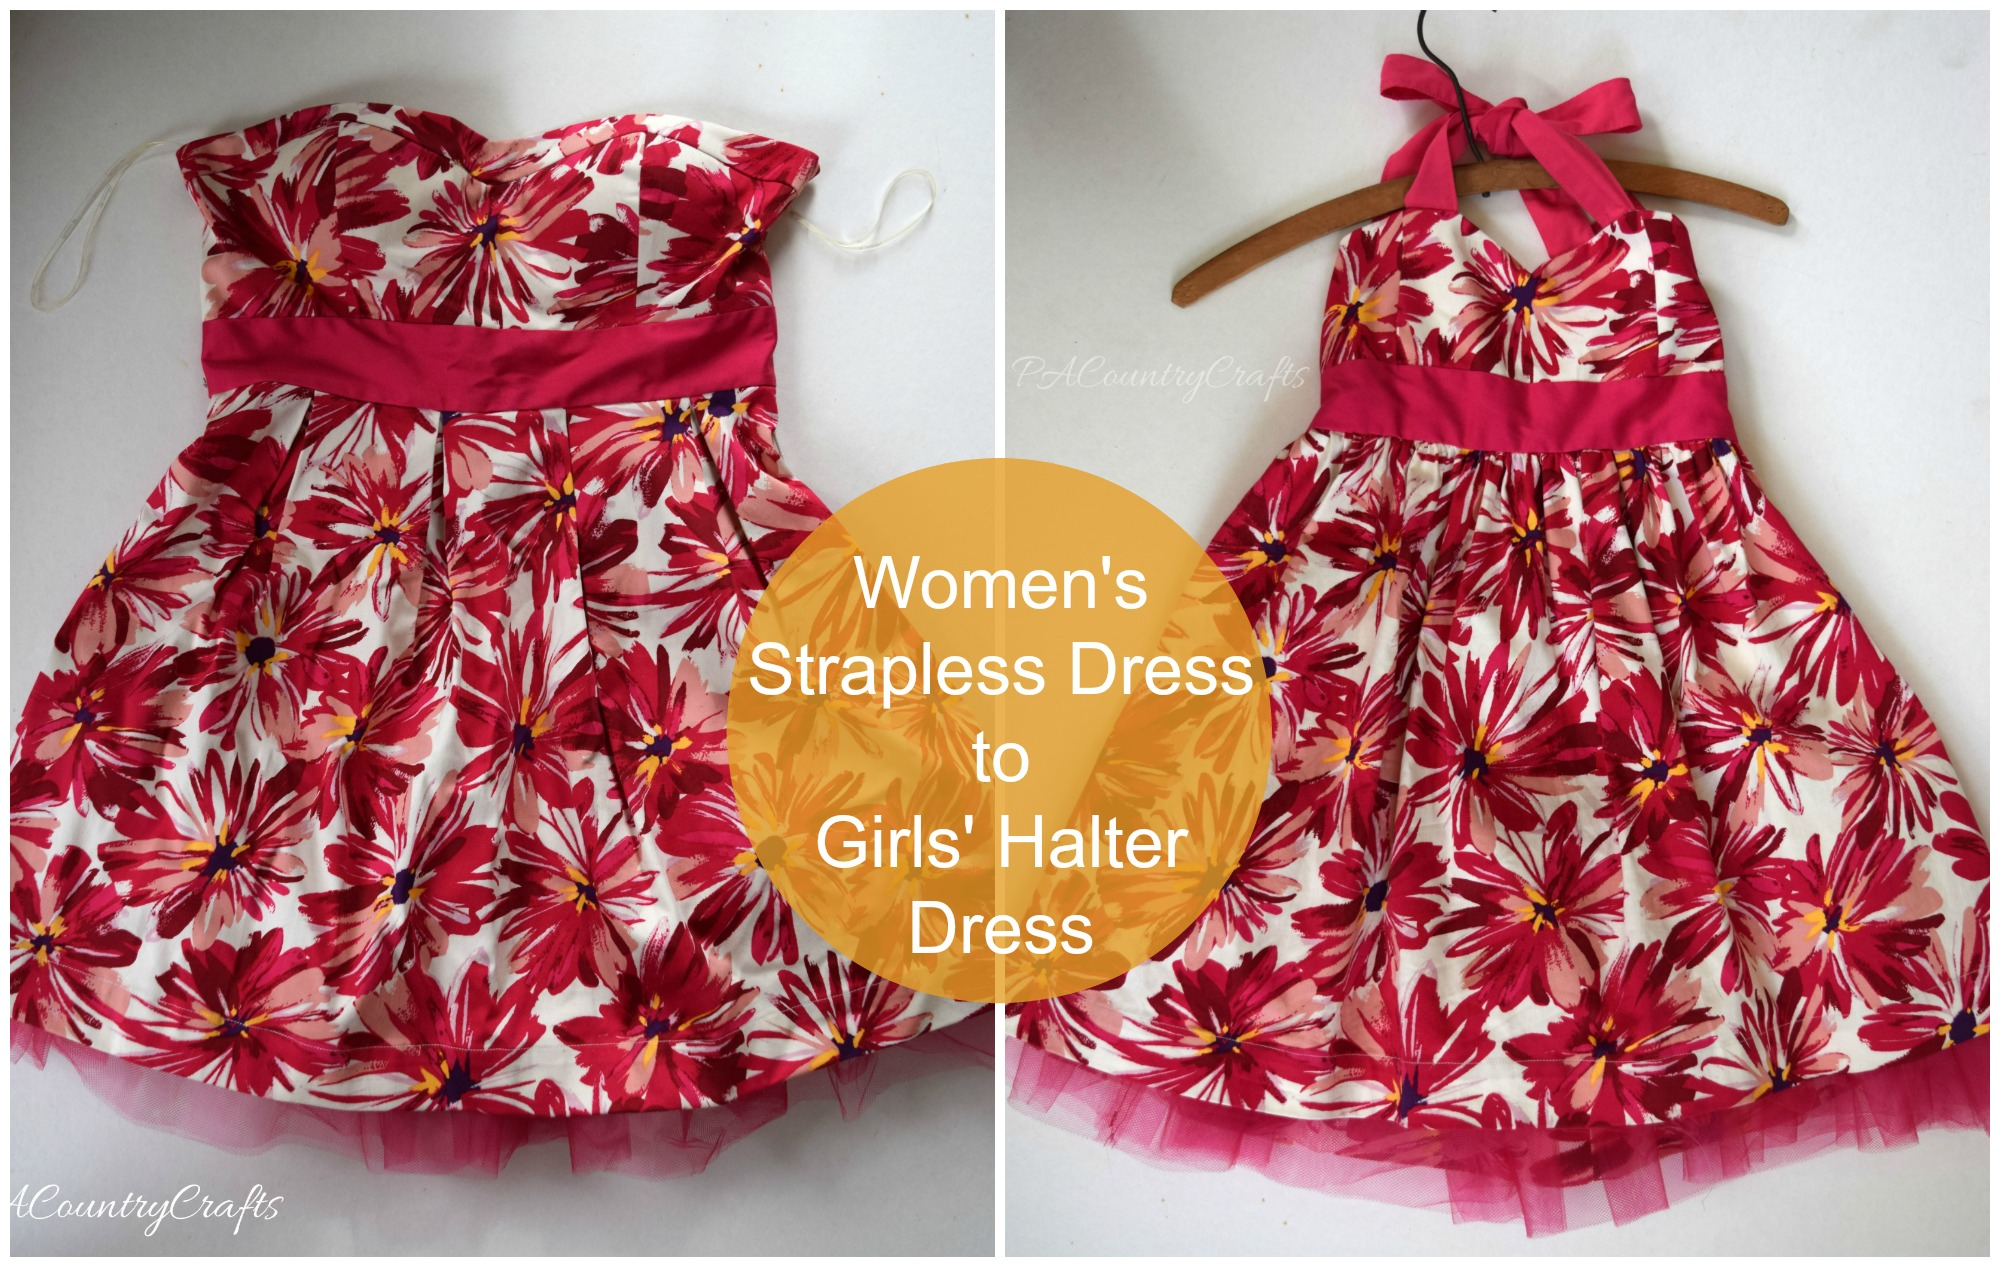 Turn a women's strapless dress into a little girls' halter dress.